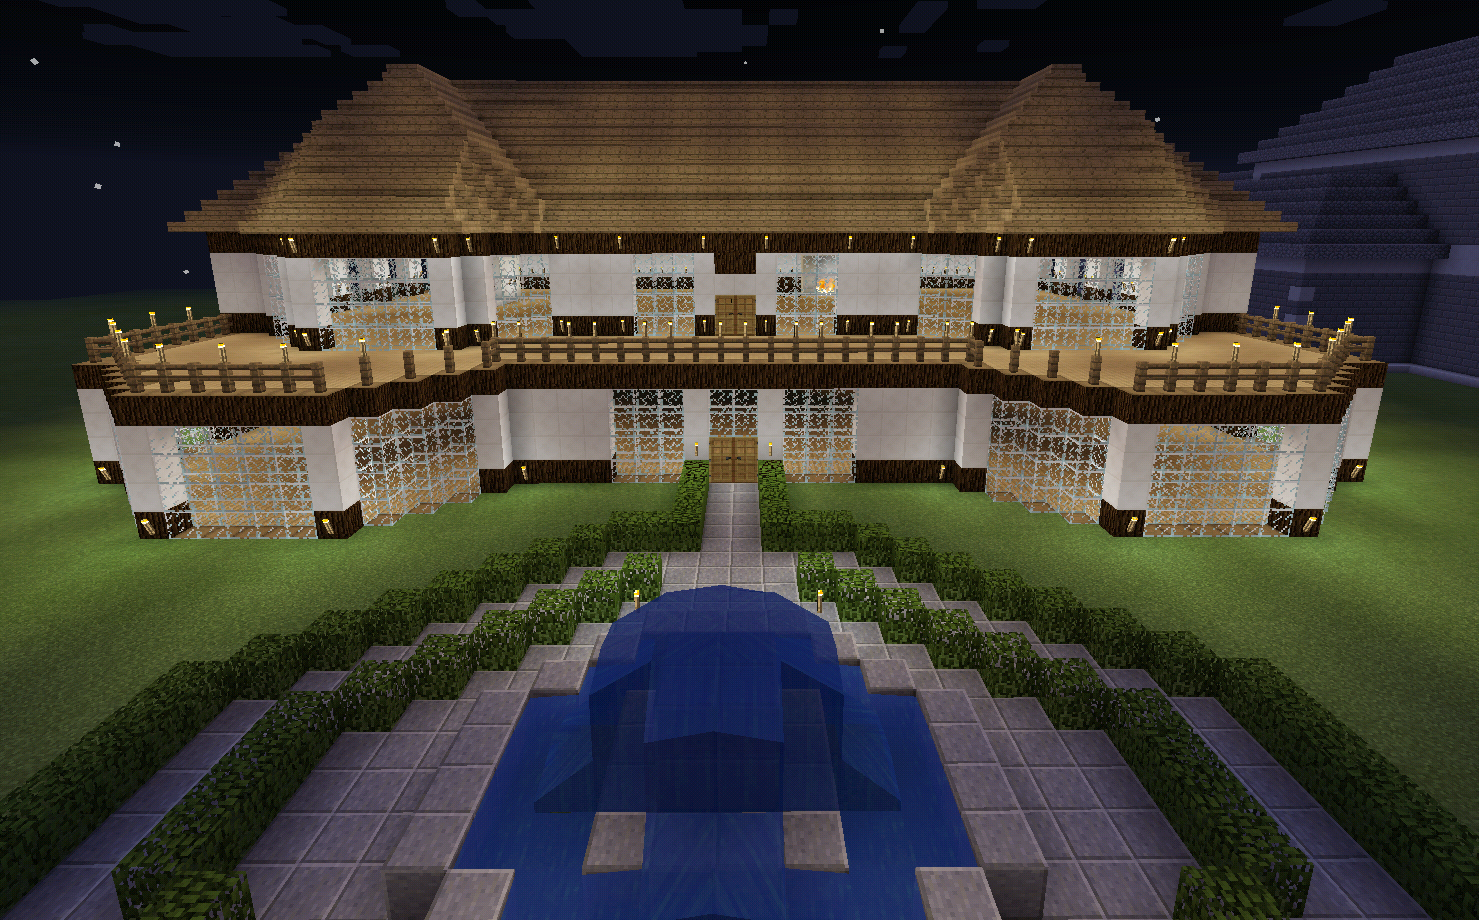 Minecraft Realistic House With Balcony Deck Wood House With Balcony Minecraft House Designs Balcony Deck